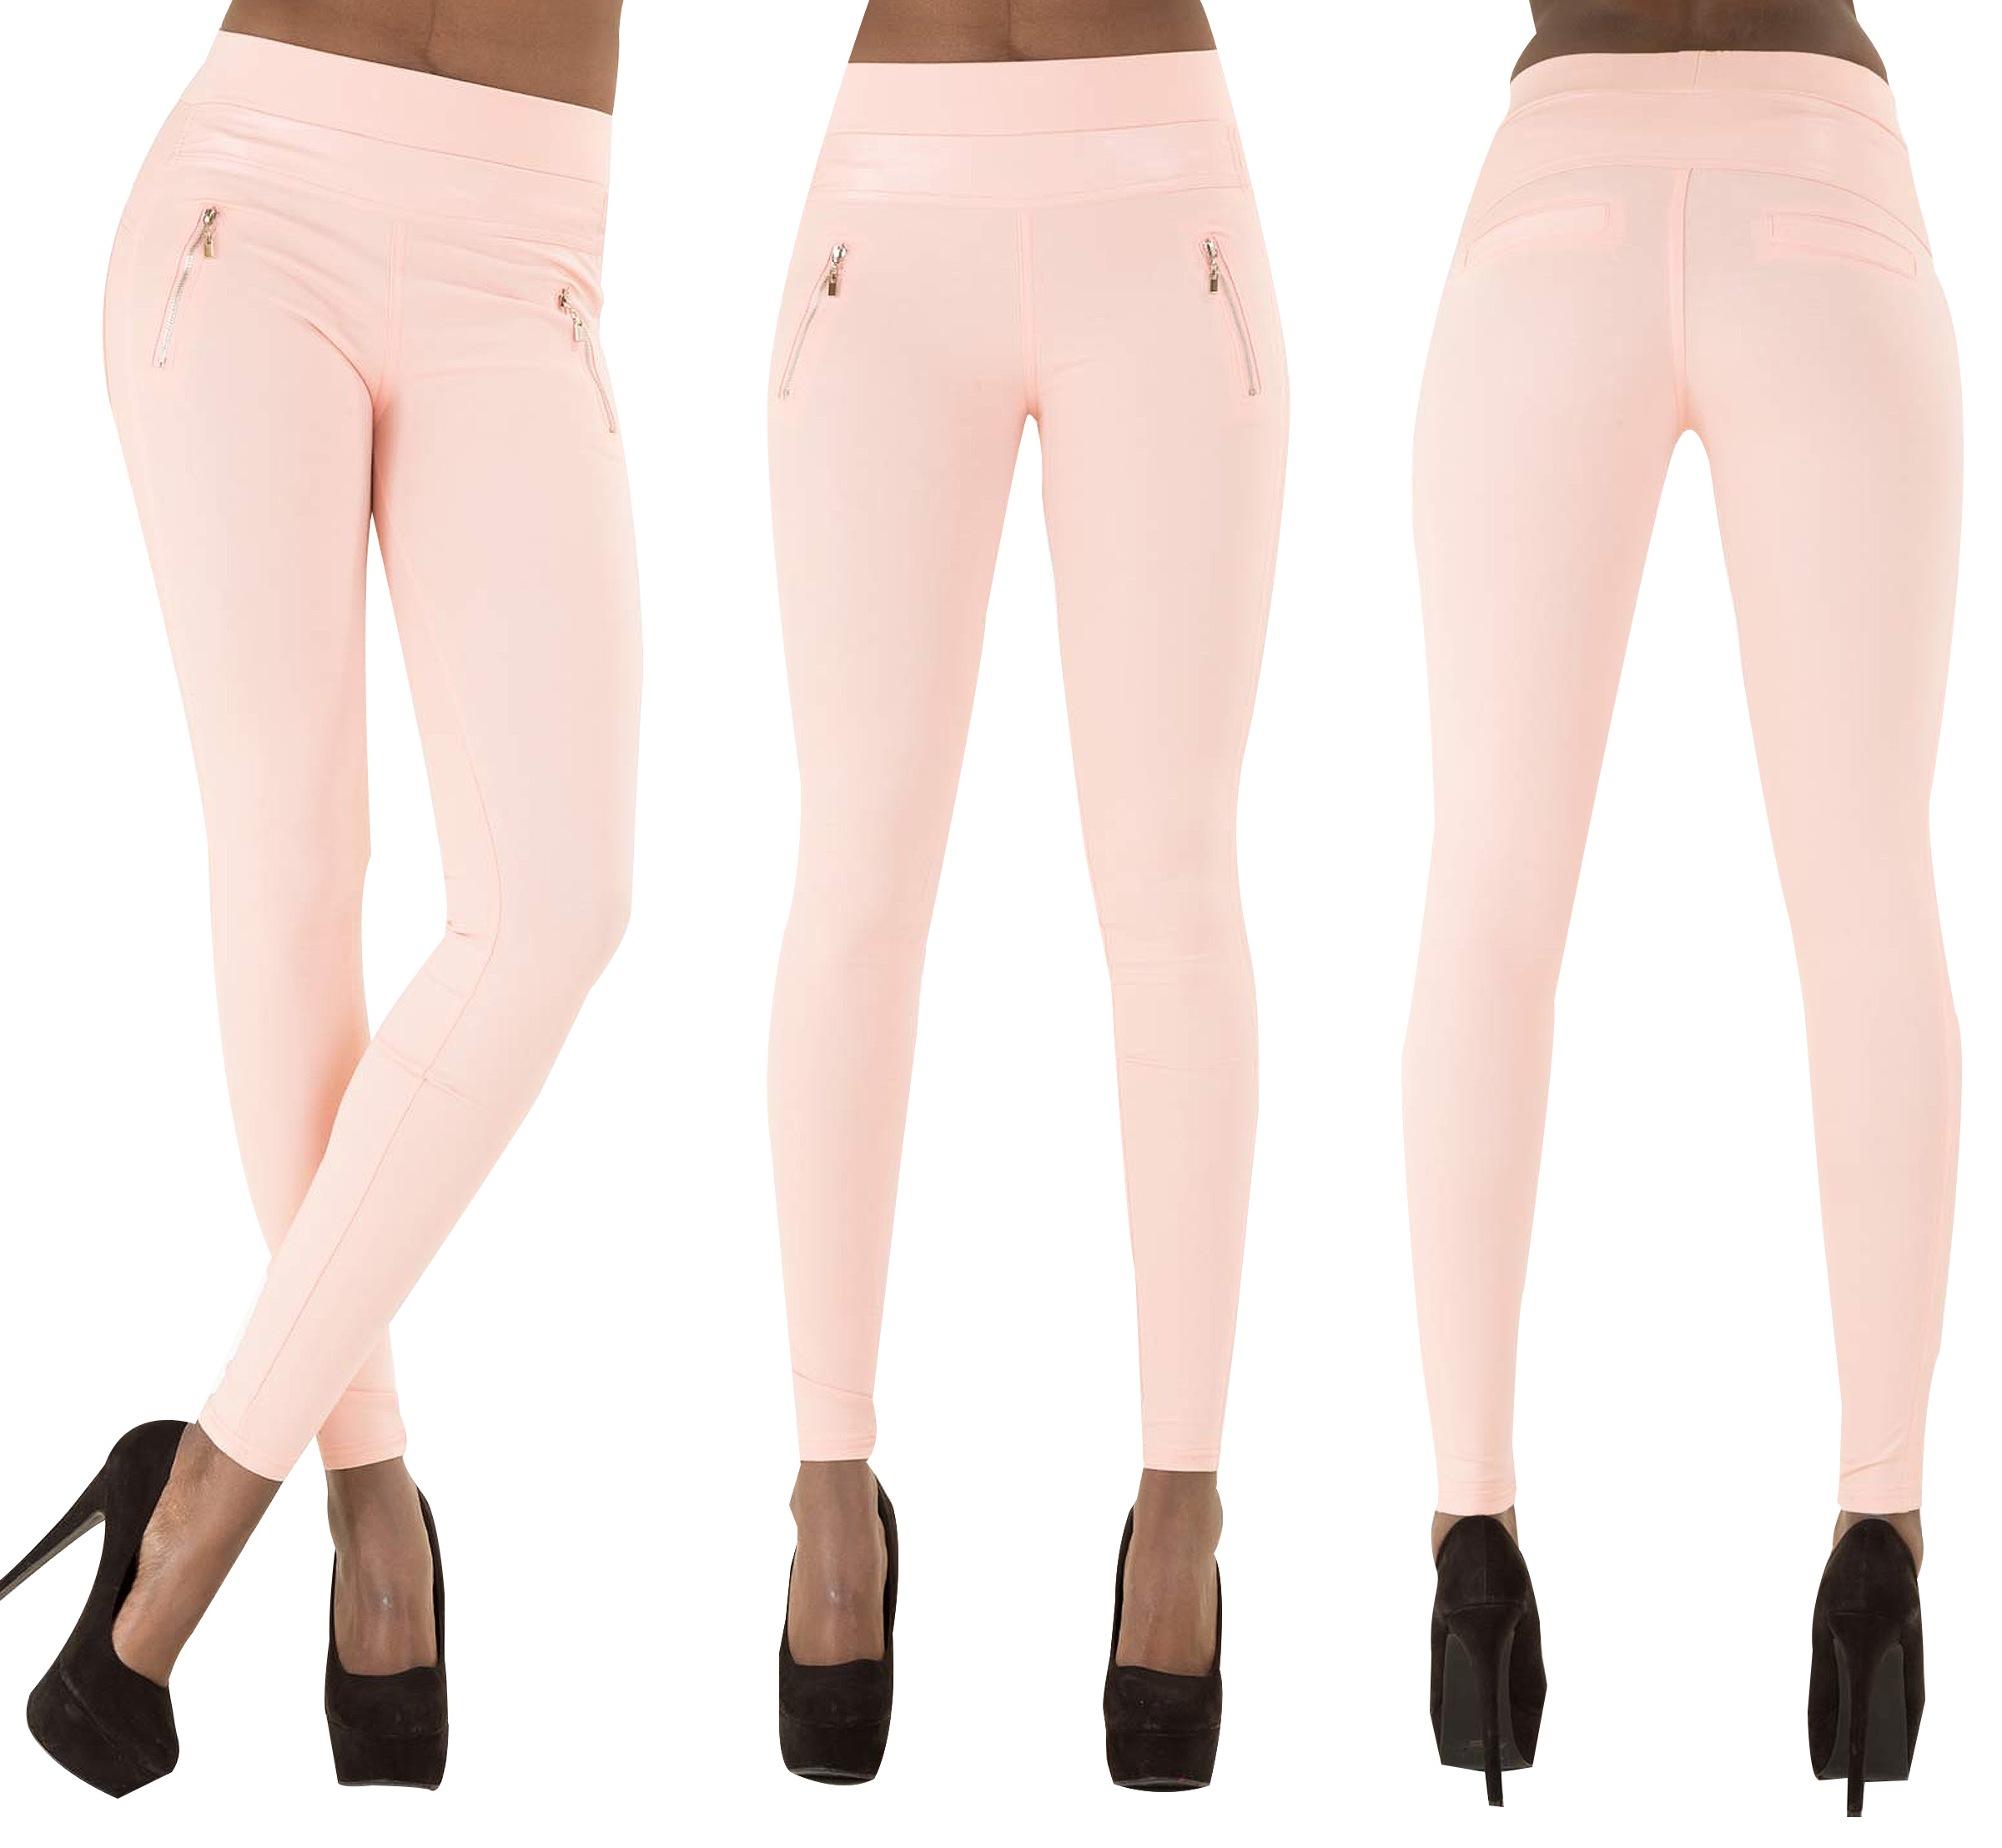 Shop bestsfilete.cf for Leggings, Tights, Socks, Sleepwear & more. Free Shipping on orders over $85 every day!